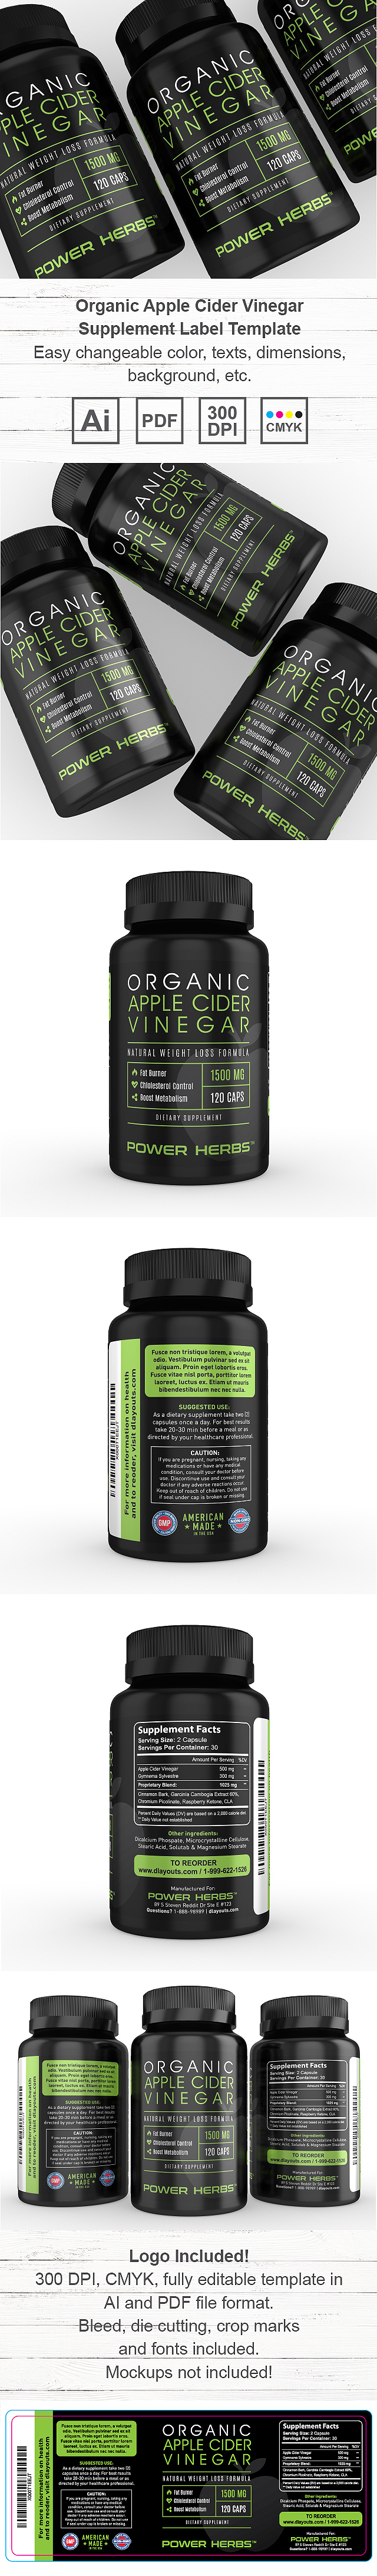 Organic Apple Cider Vinegar Supplement Label Template